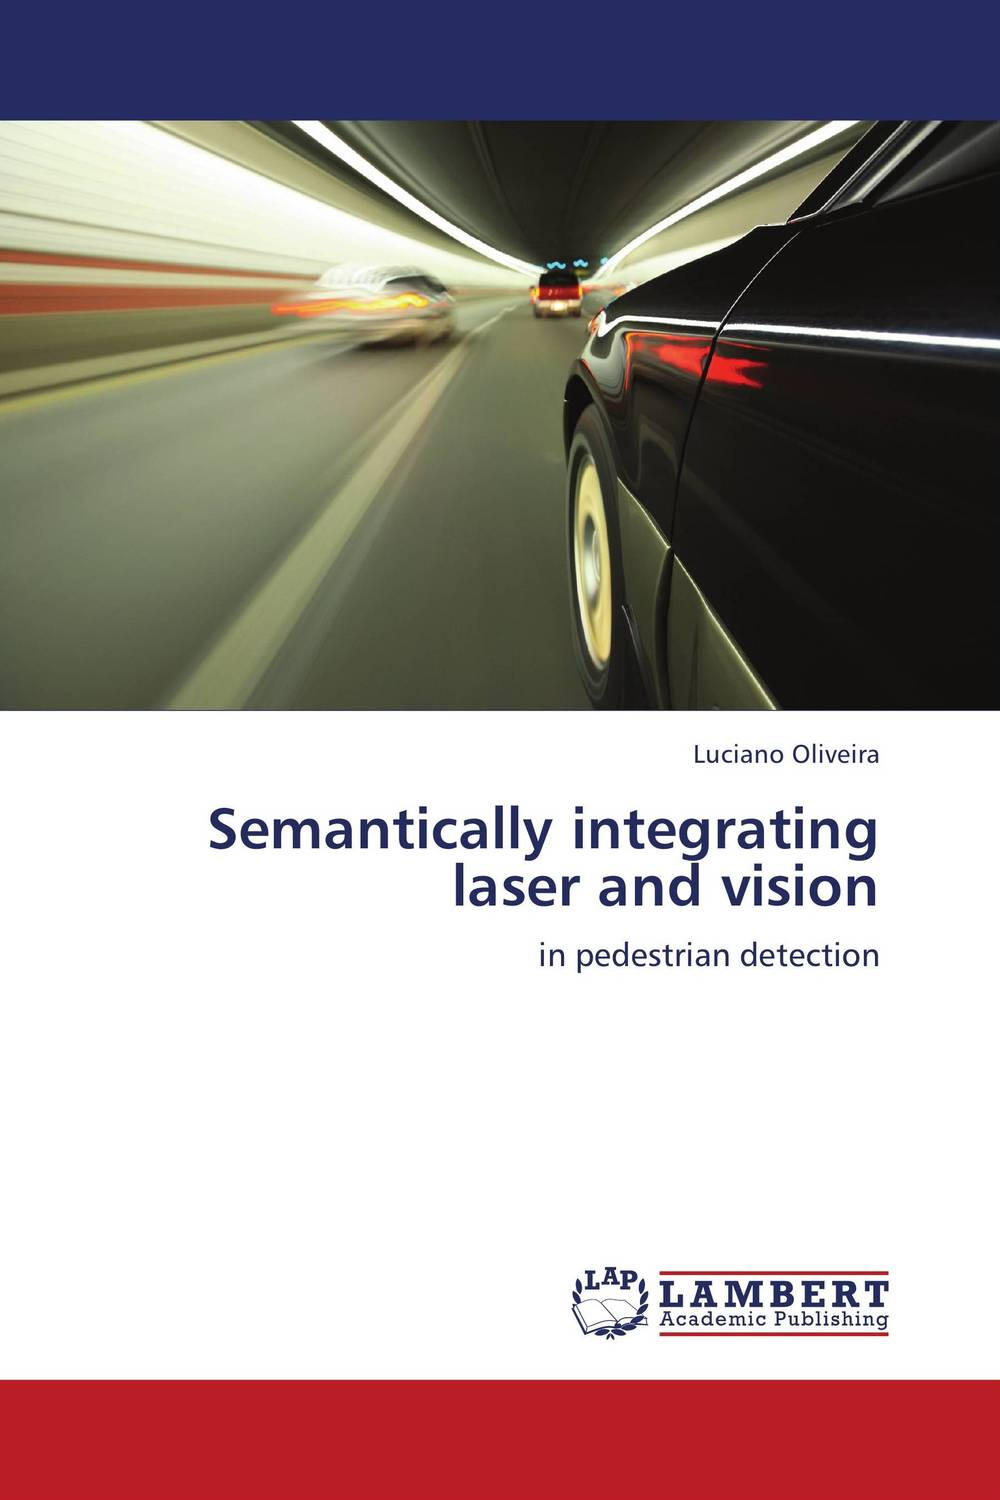 Semantically integrating laser and vision optical elements and systems in laser technique and metrology